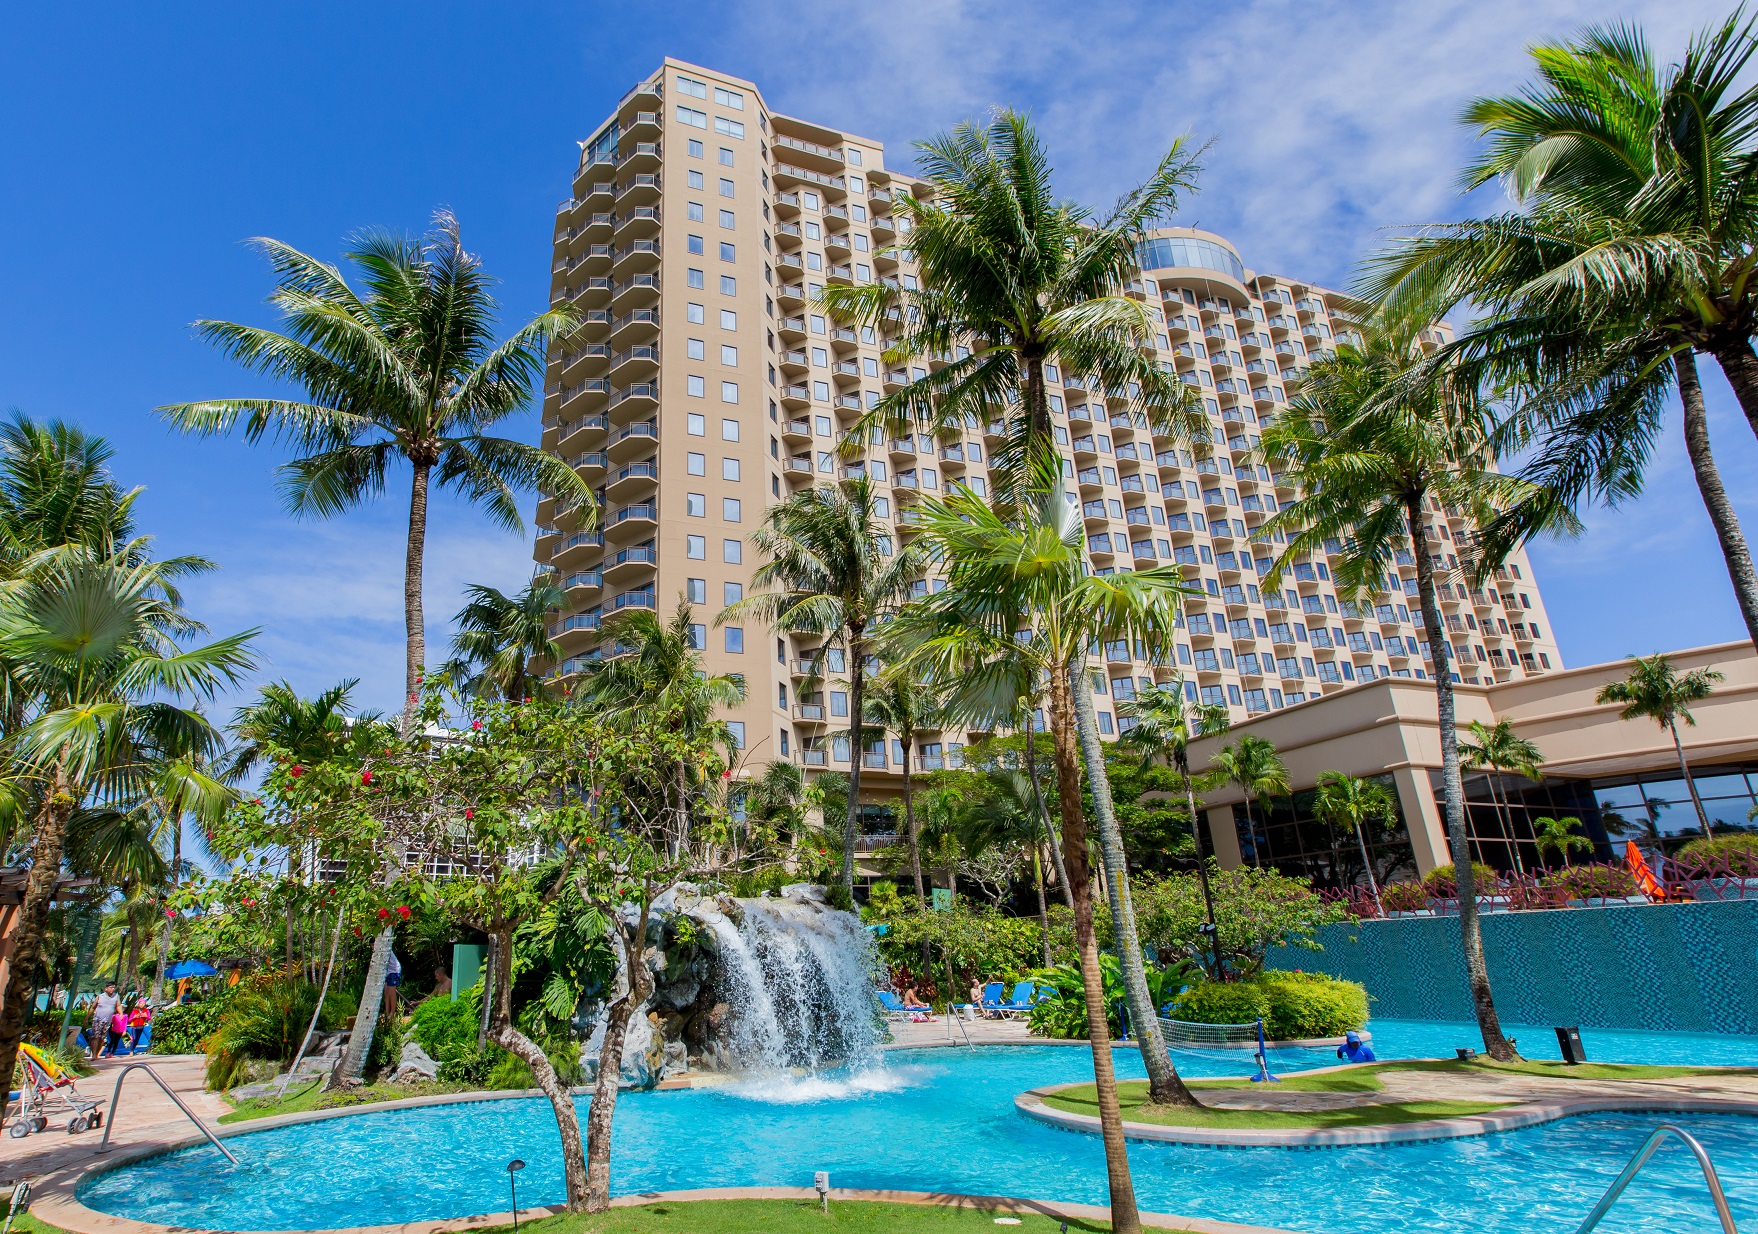 Dusit adds beach hotel and shopping Center in Guam